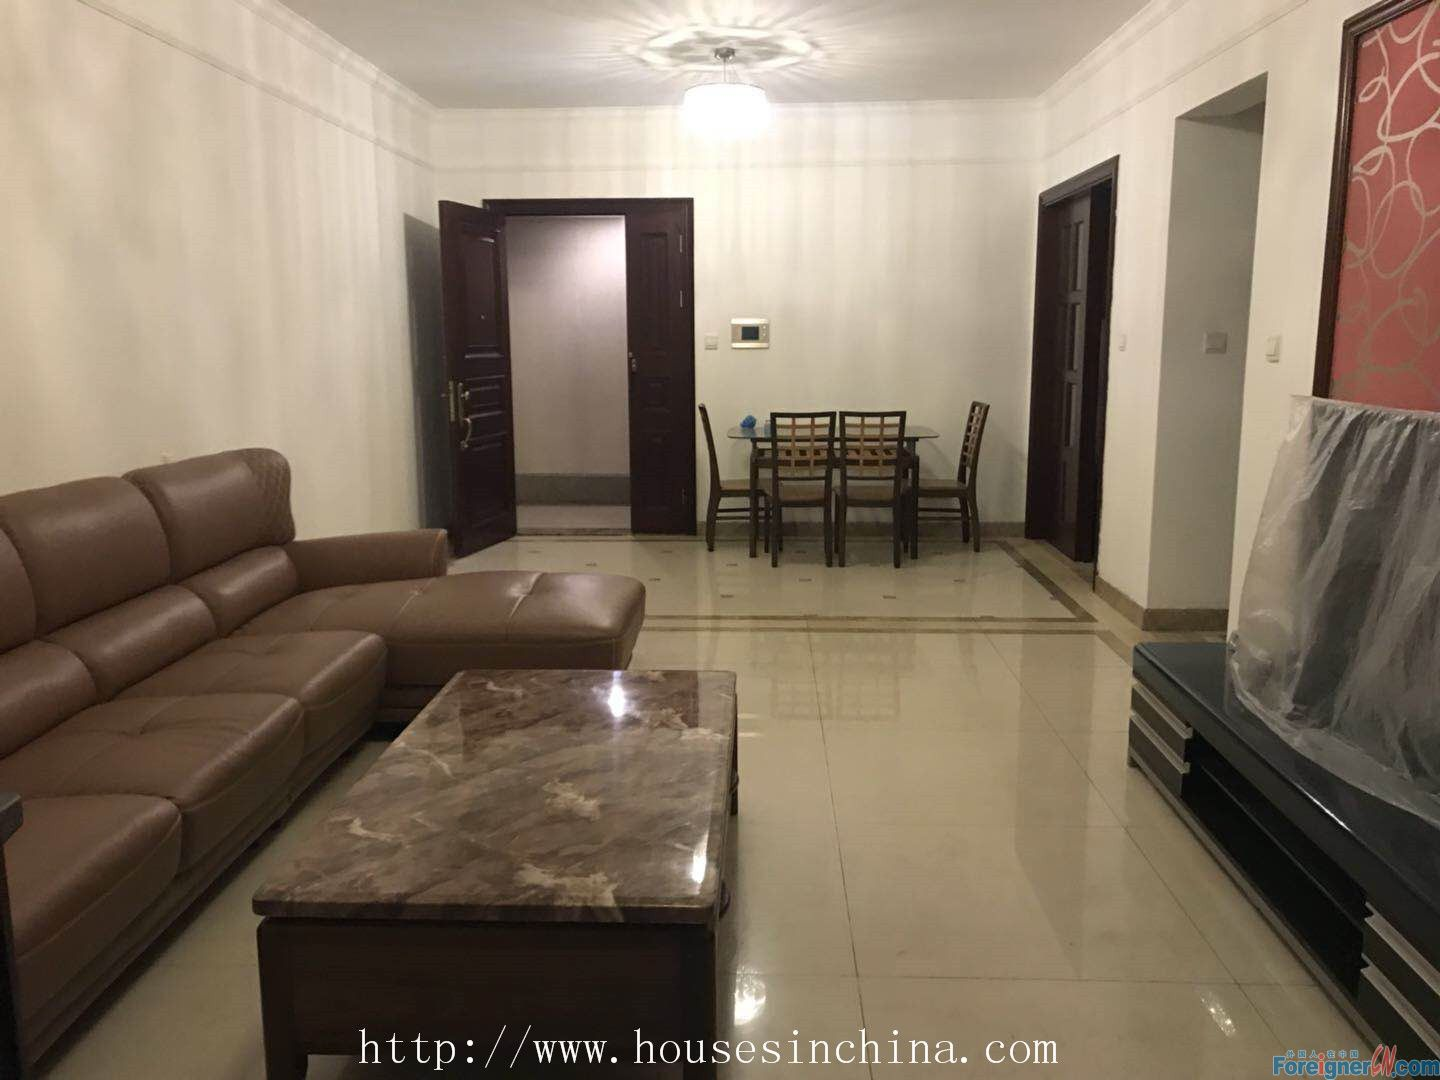 Top View International Aprt., 3Br, clean and tidy, quietly, facing garden and south, Overlooking Pearl River and Zhu Jiang Park. Newlife Real Estate now starts a coupon activity.